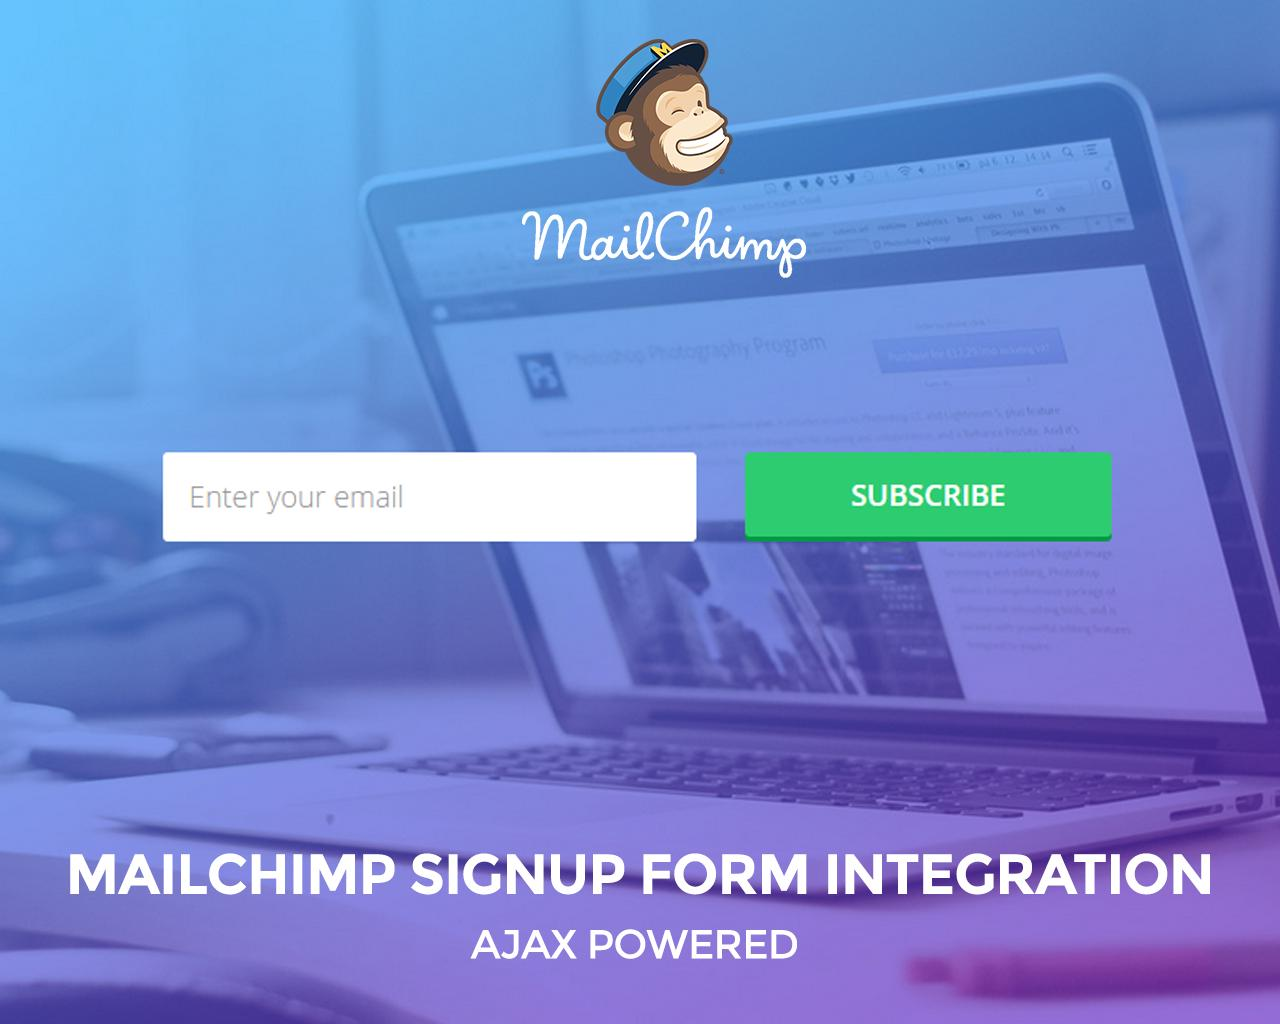 Ajax Signup Form Integration with Mailchimp by surjithctly - 69913